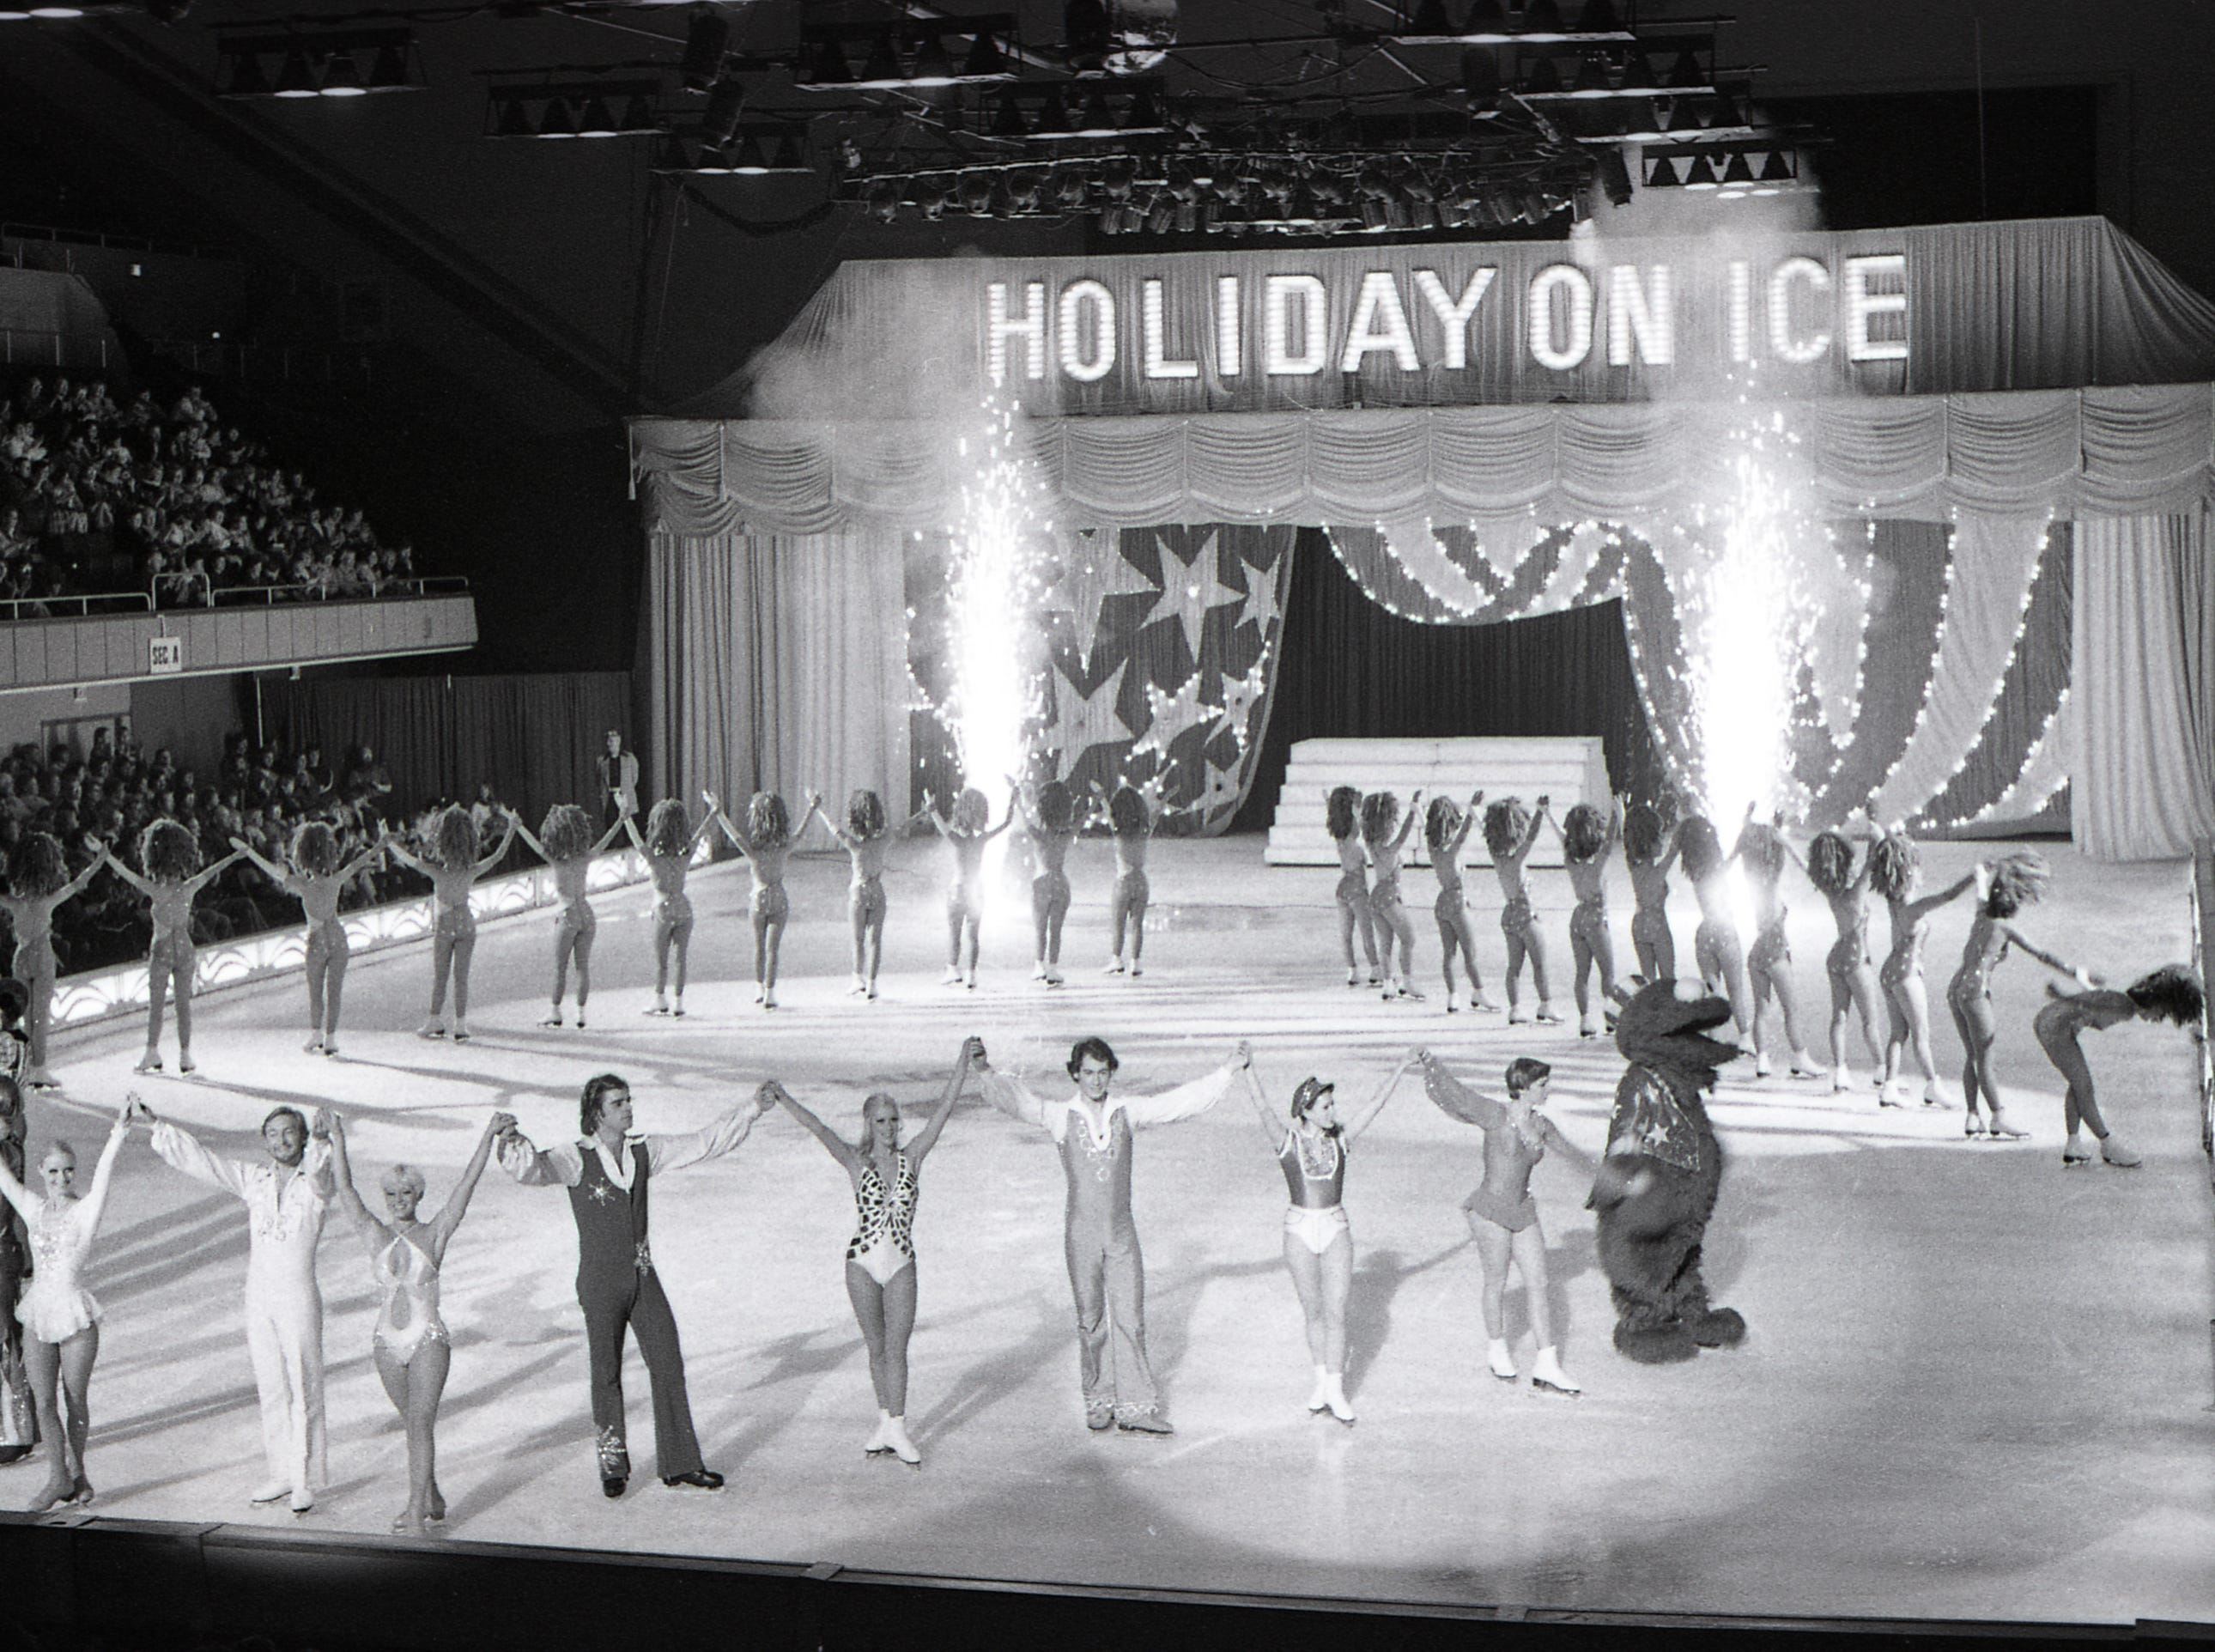 Holiday on Ice at Lansing Civic Center, Nov. 15, 1971.